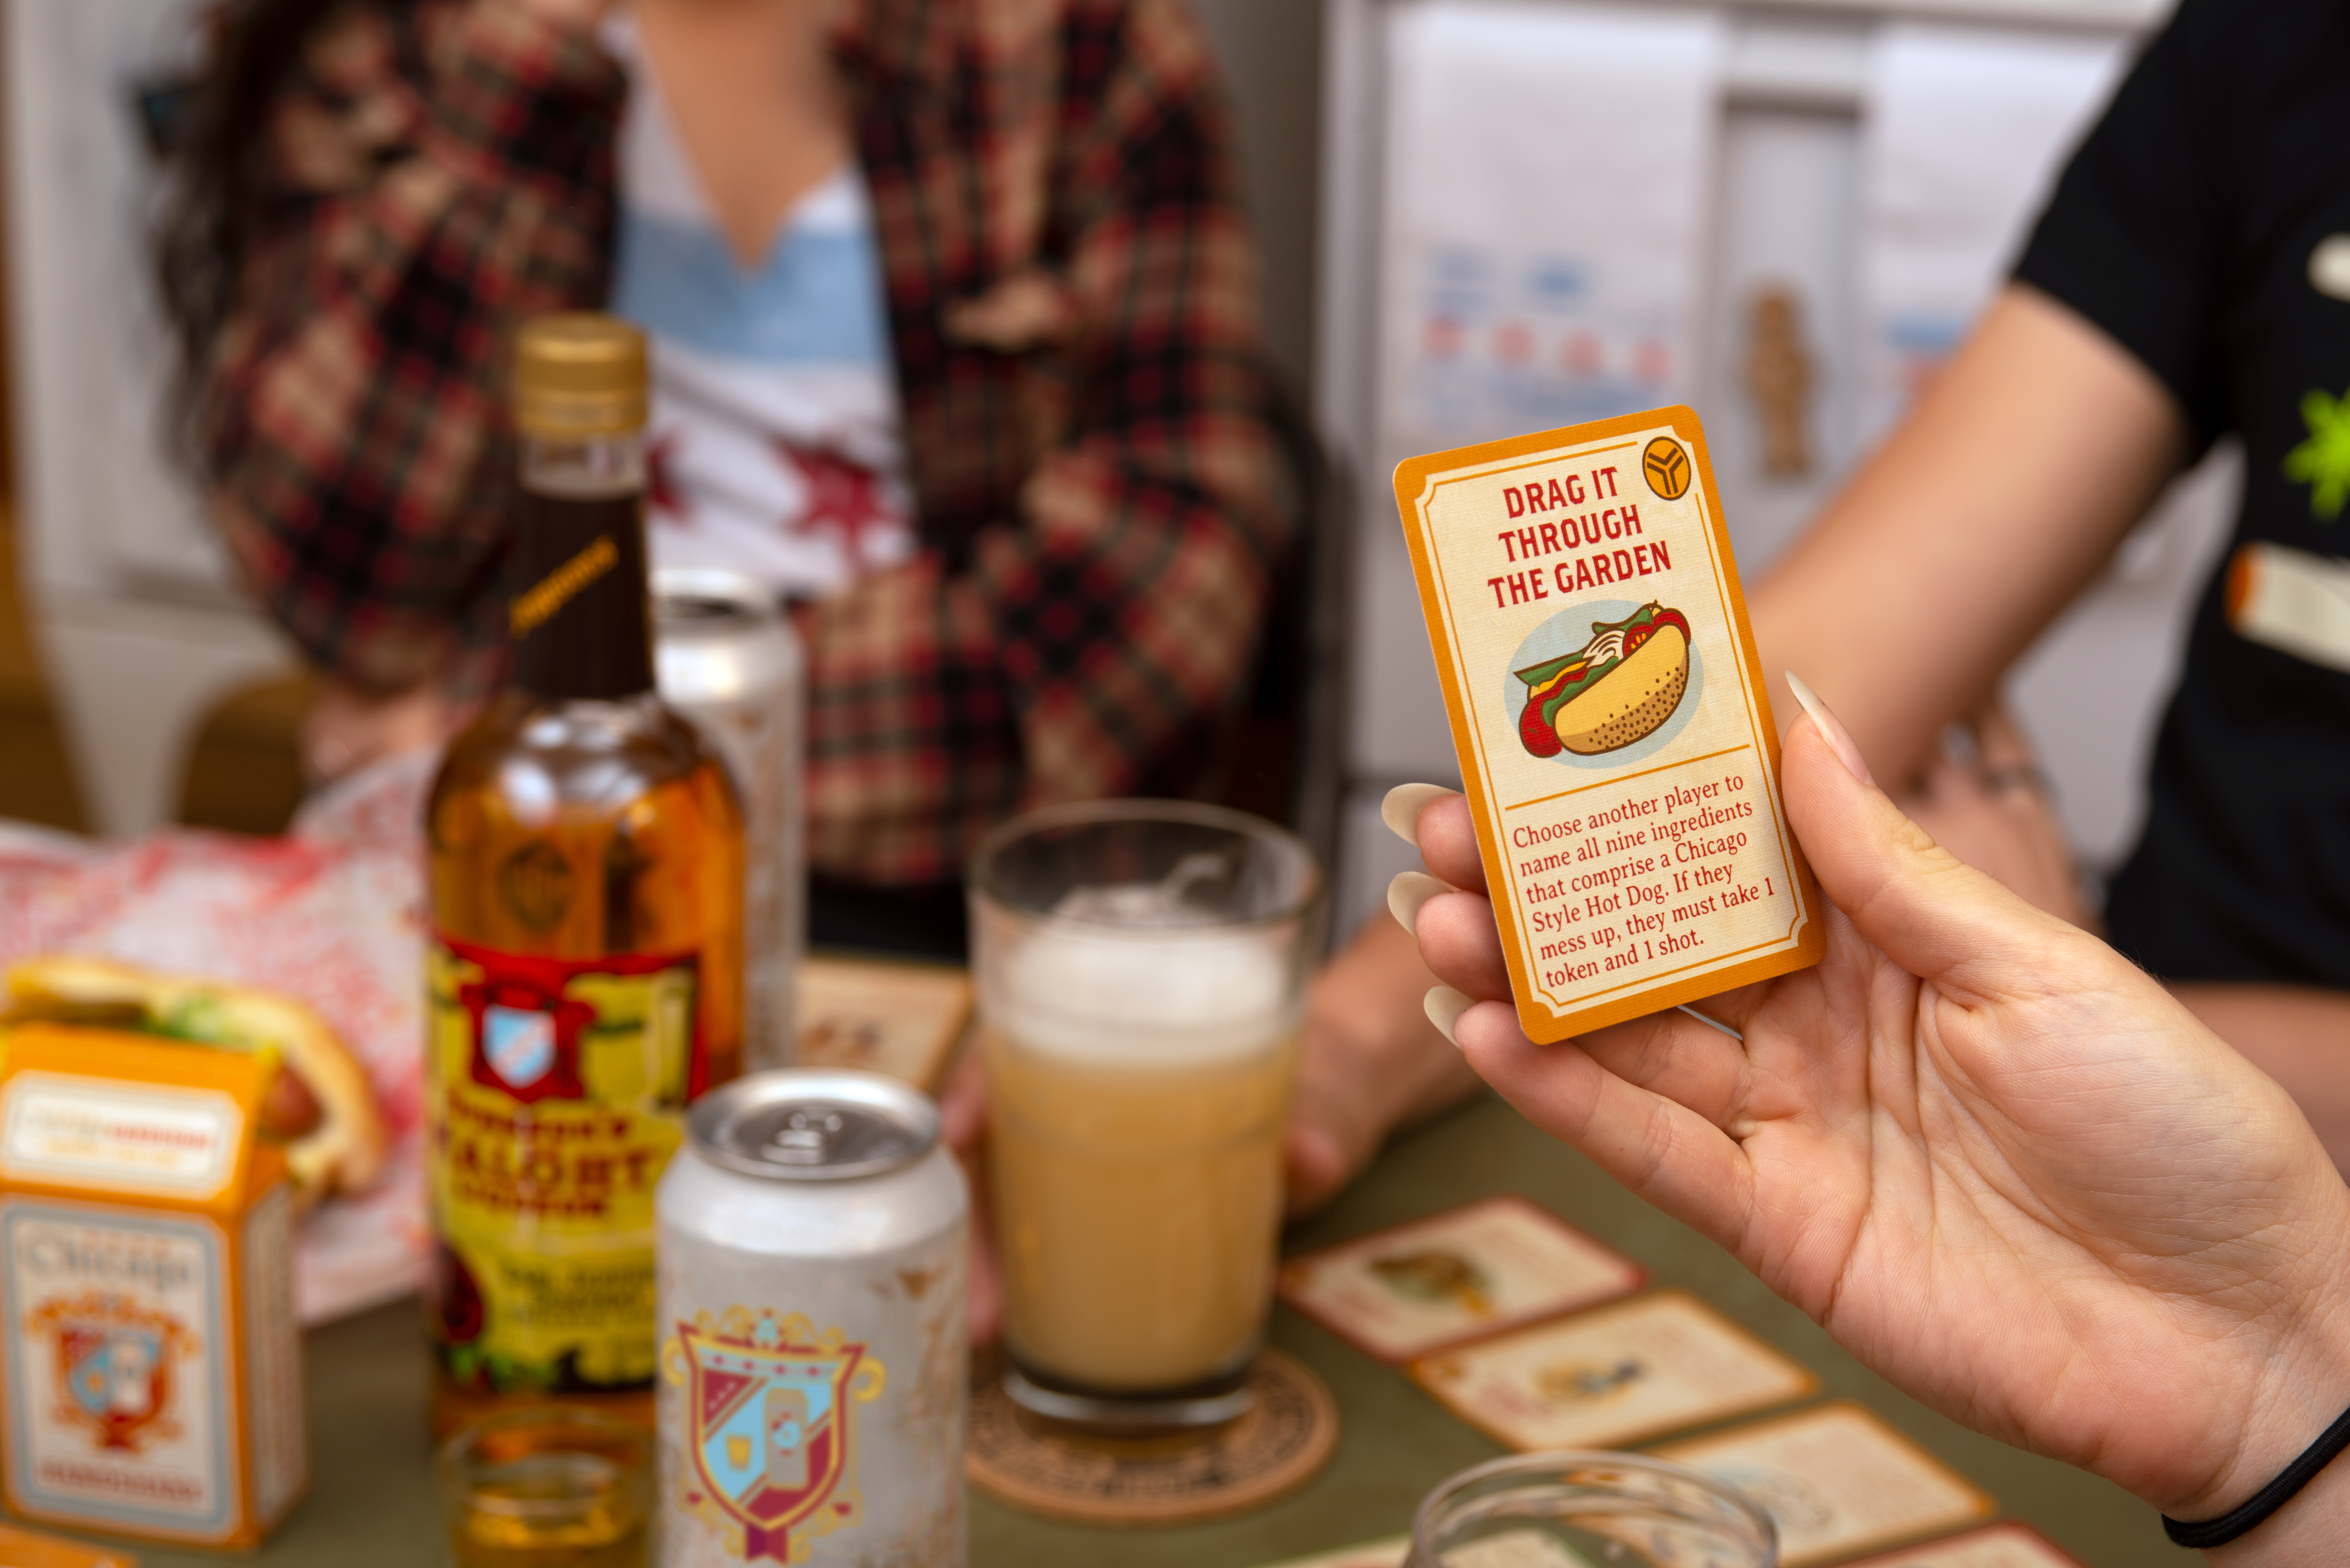 A person's hand holds a playing card with an illustration of a Chicago-style hot dog.